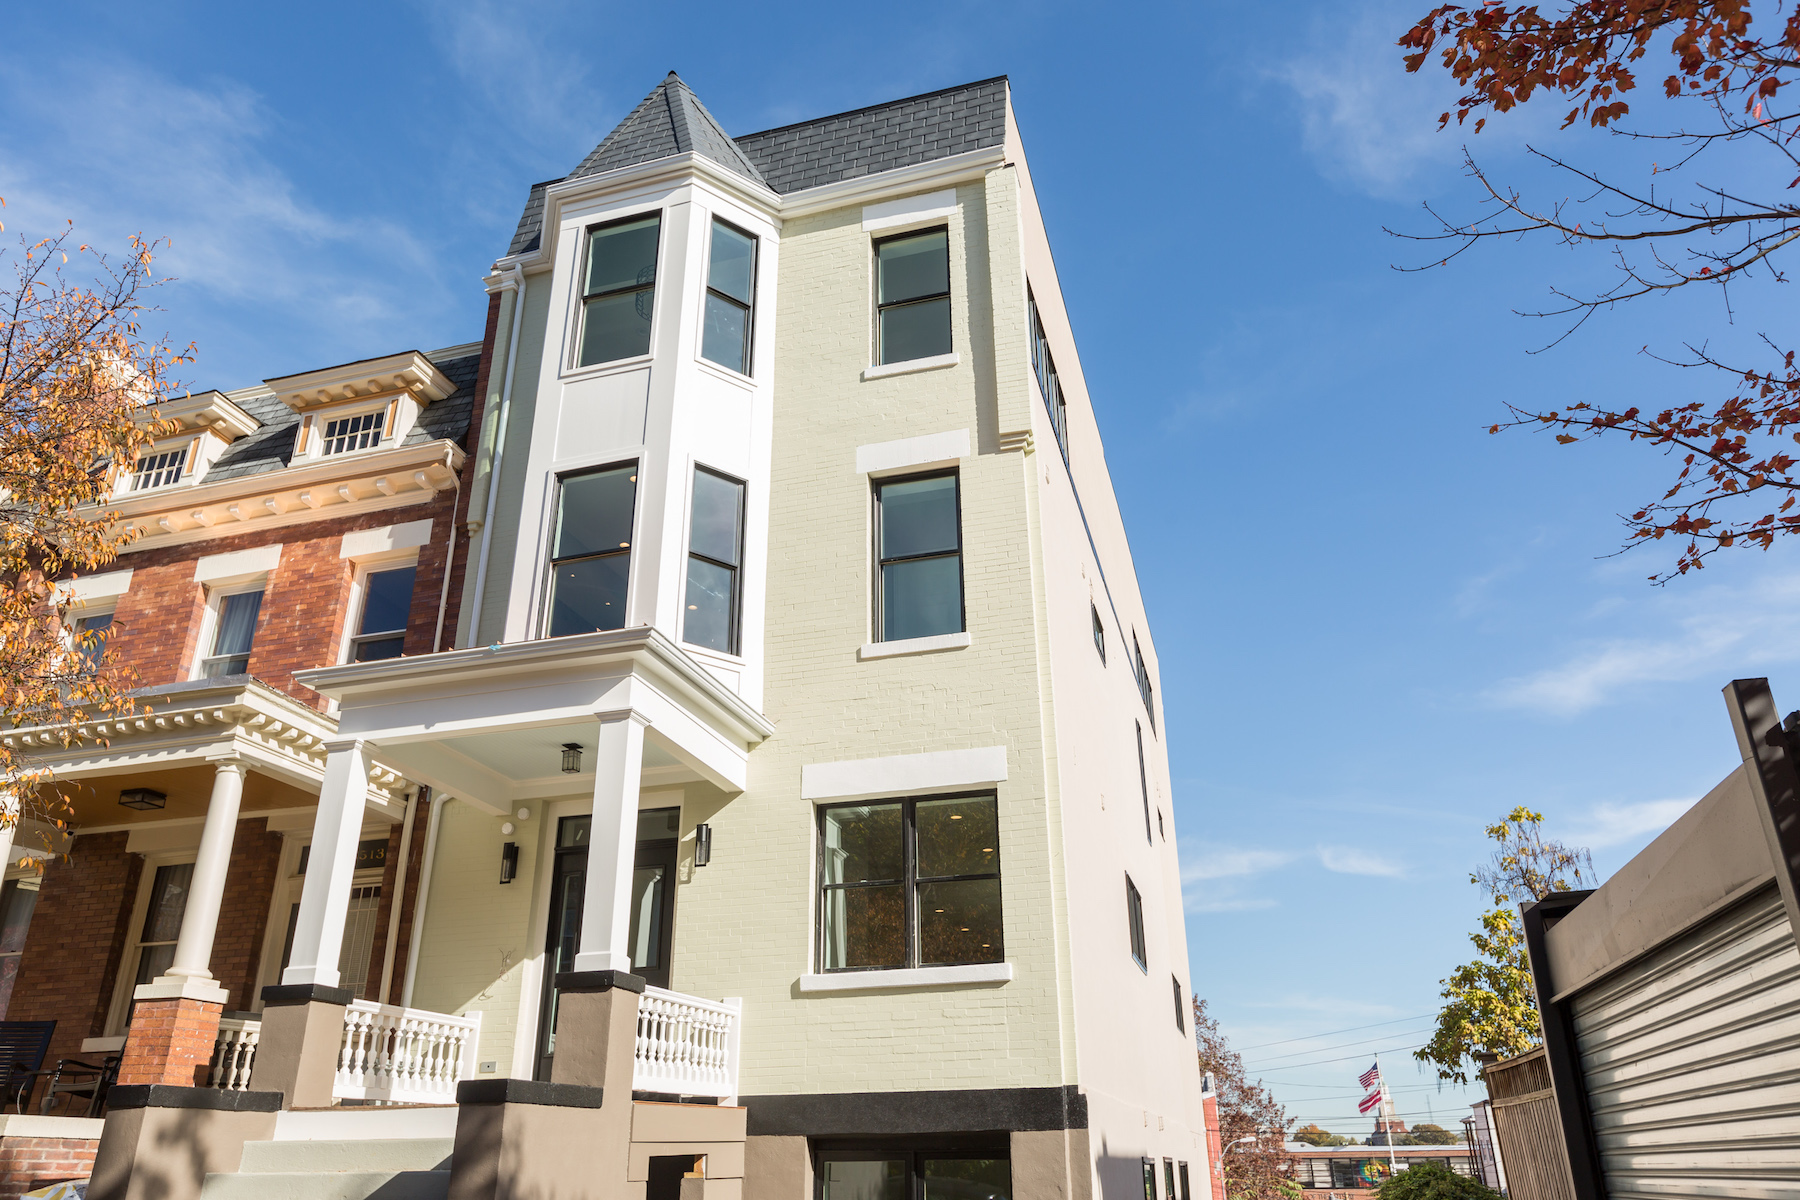 Townhouse for Sale at Columbia Heights Adams Morgan 2511 NW 12th St 1 Washington, District Of Columbia, 20009 United States